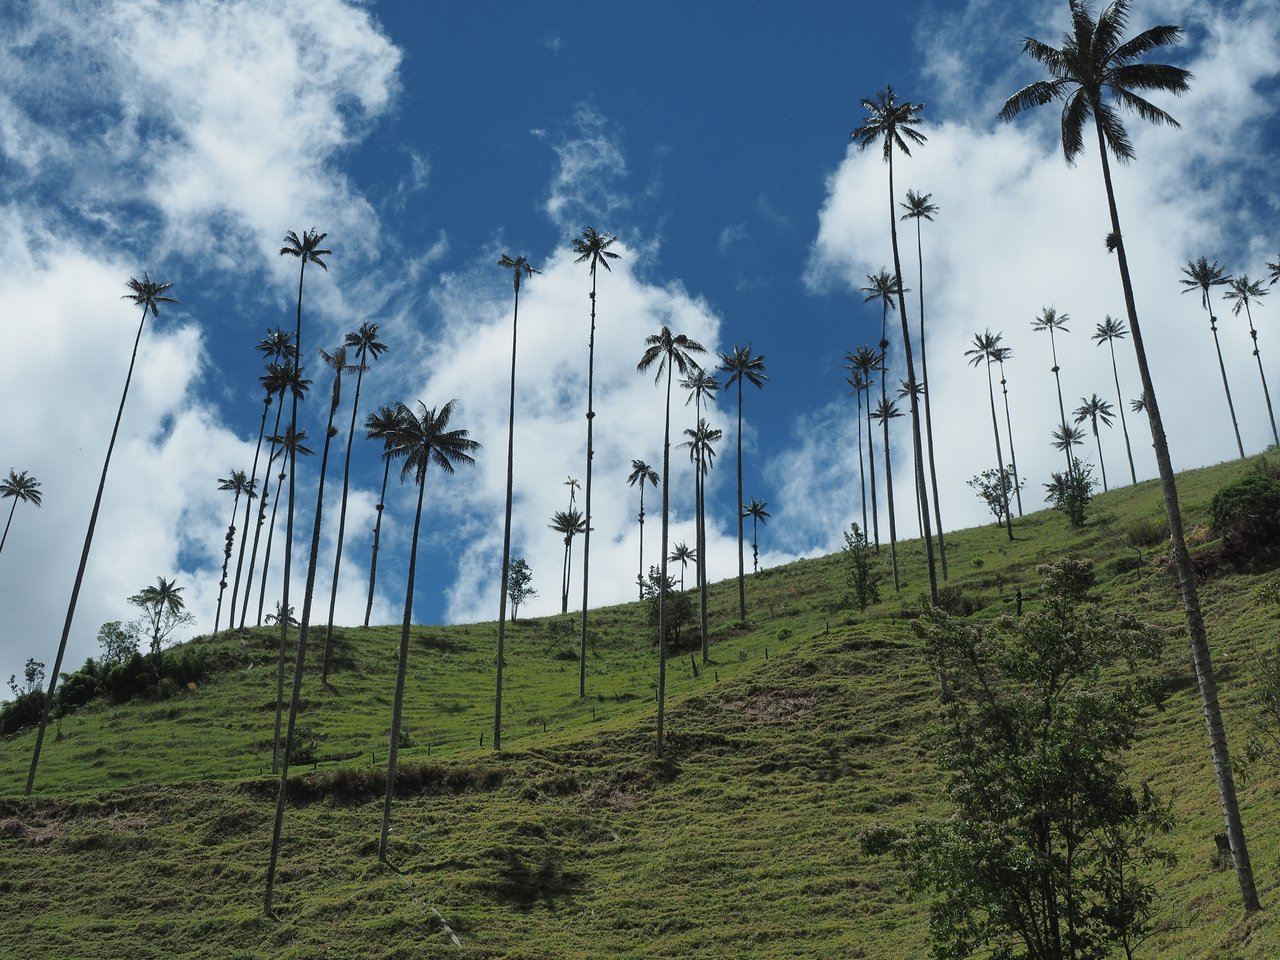 Valle de Cocora | Photo taken by Peter G